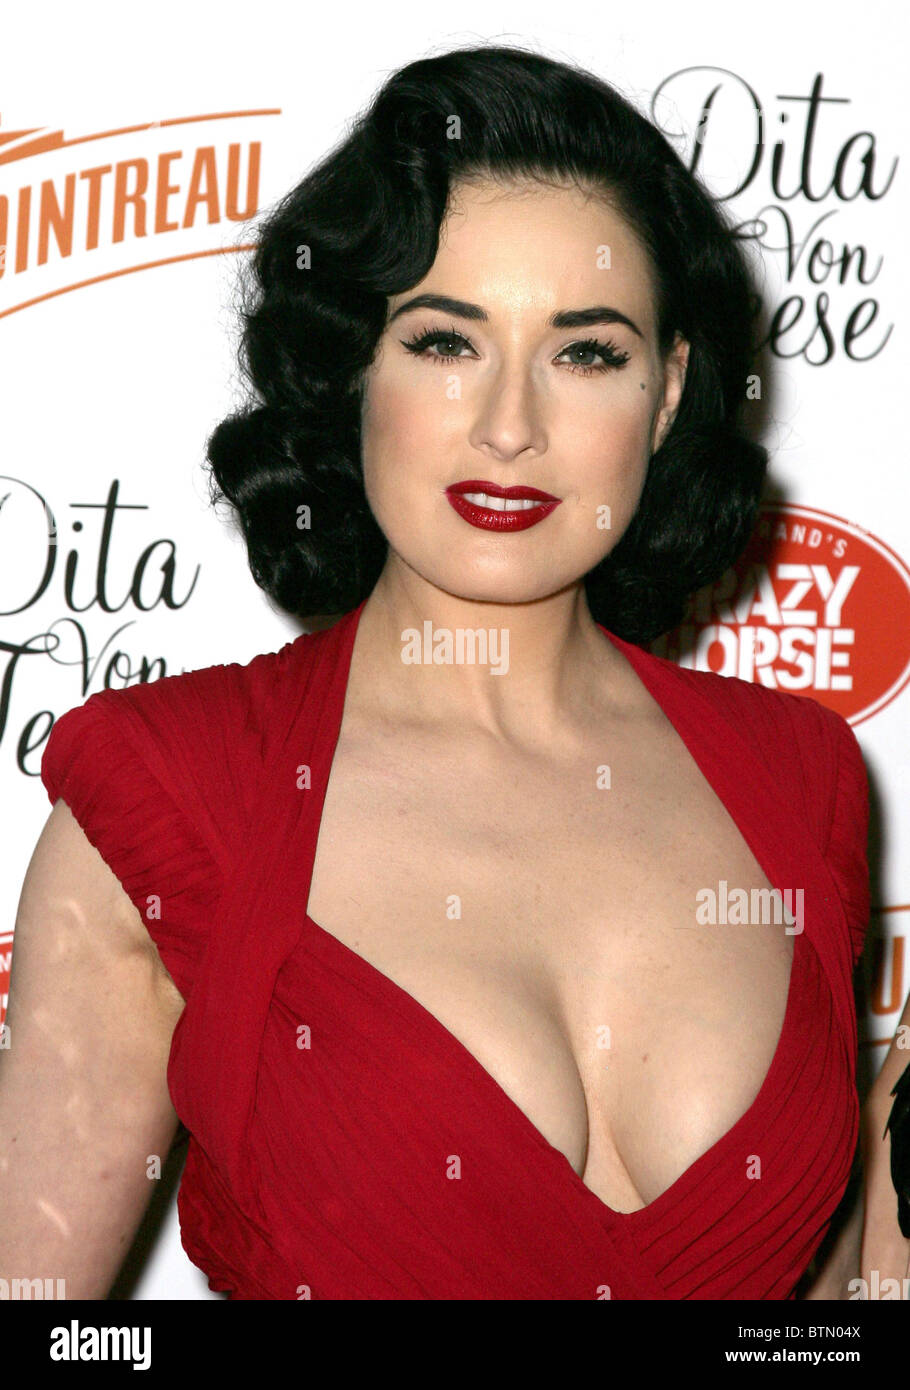 Cleavage Dita Von Teese naked (67 photos), Pussy, Cleavage, Boobs, butt 2018